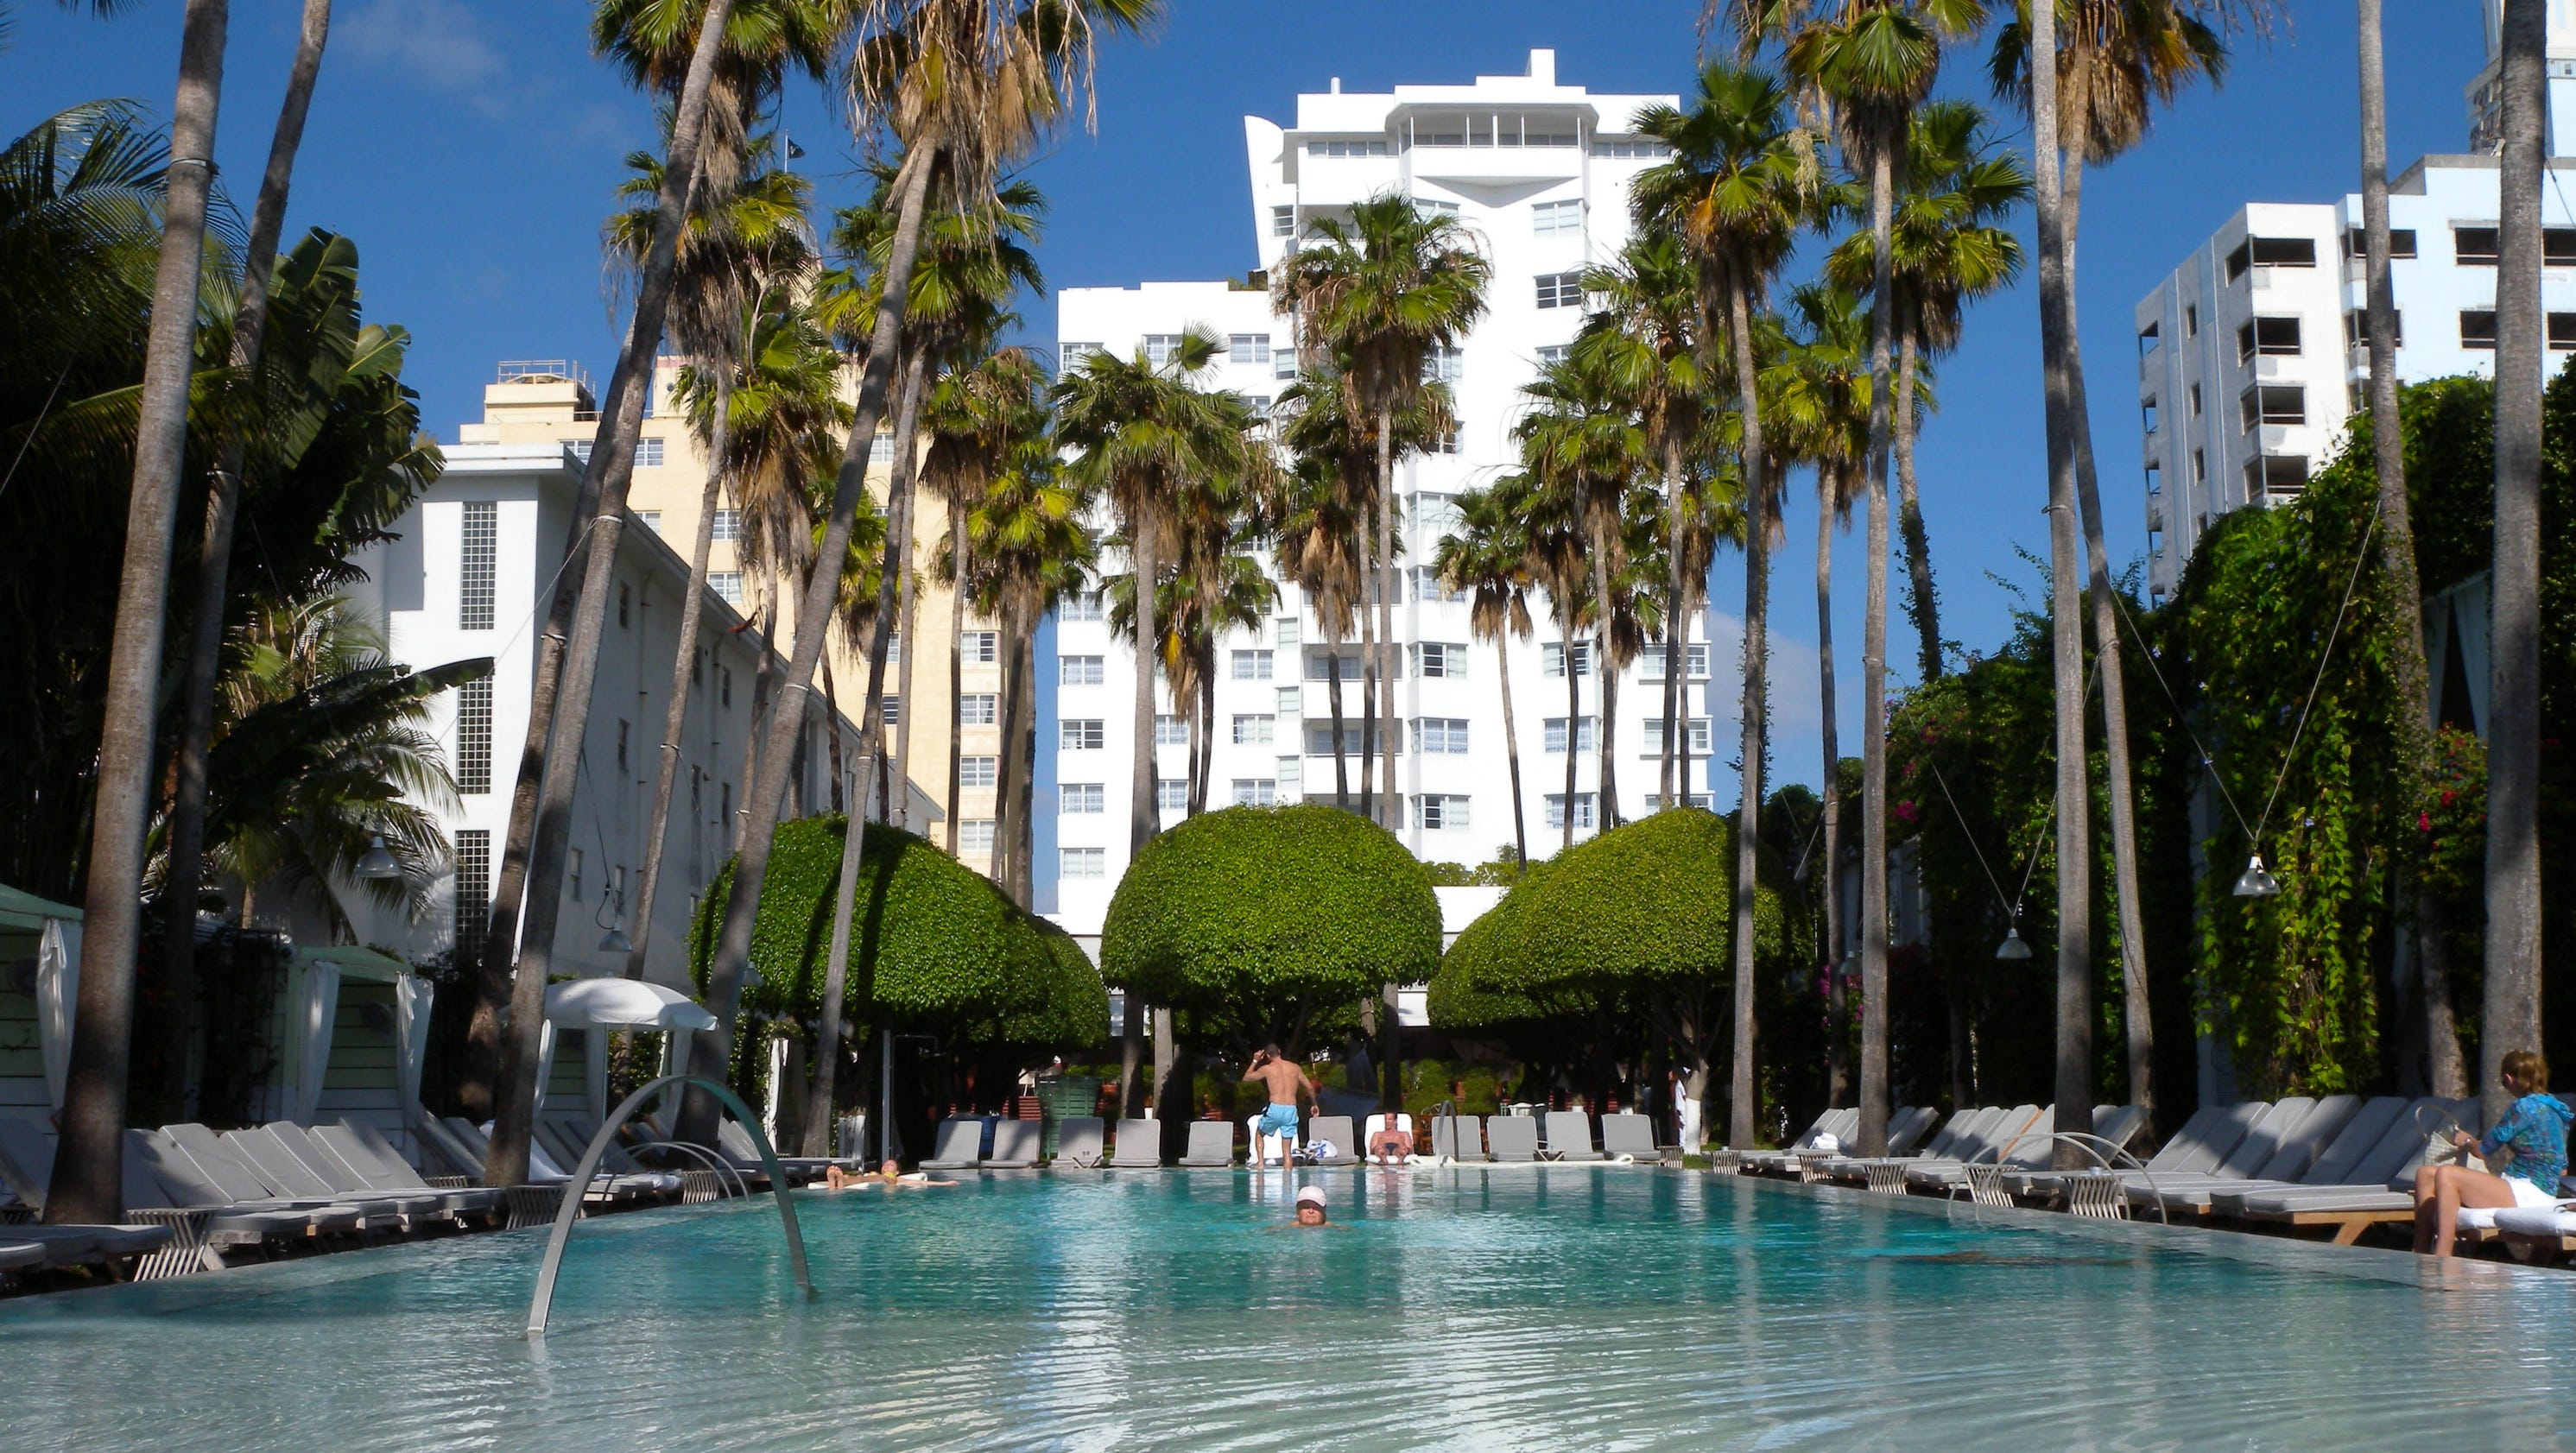 Top 10 party hotels in america for Best hotel in america